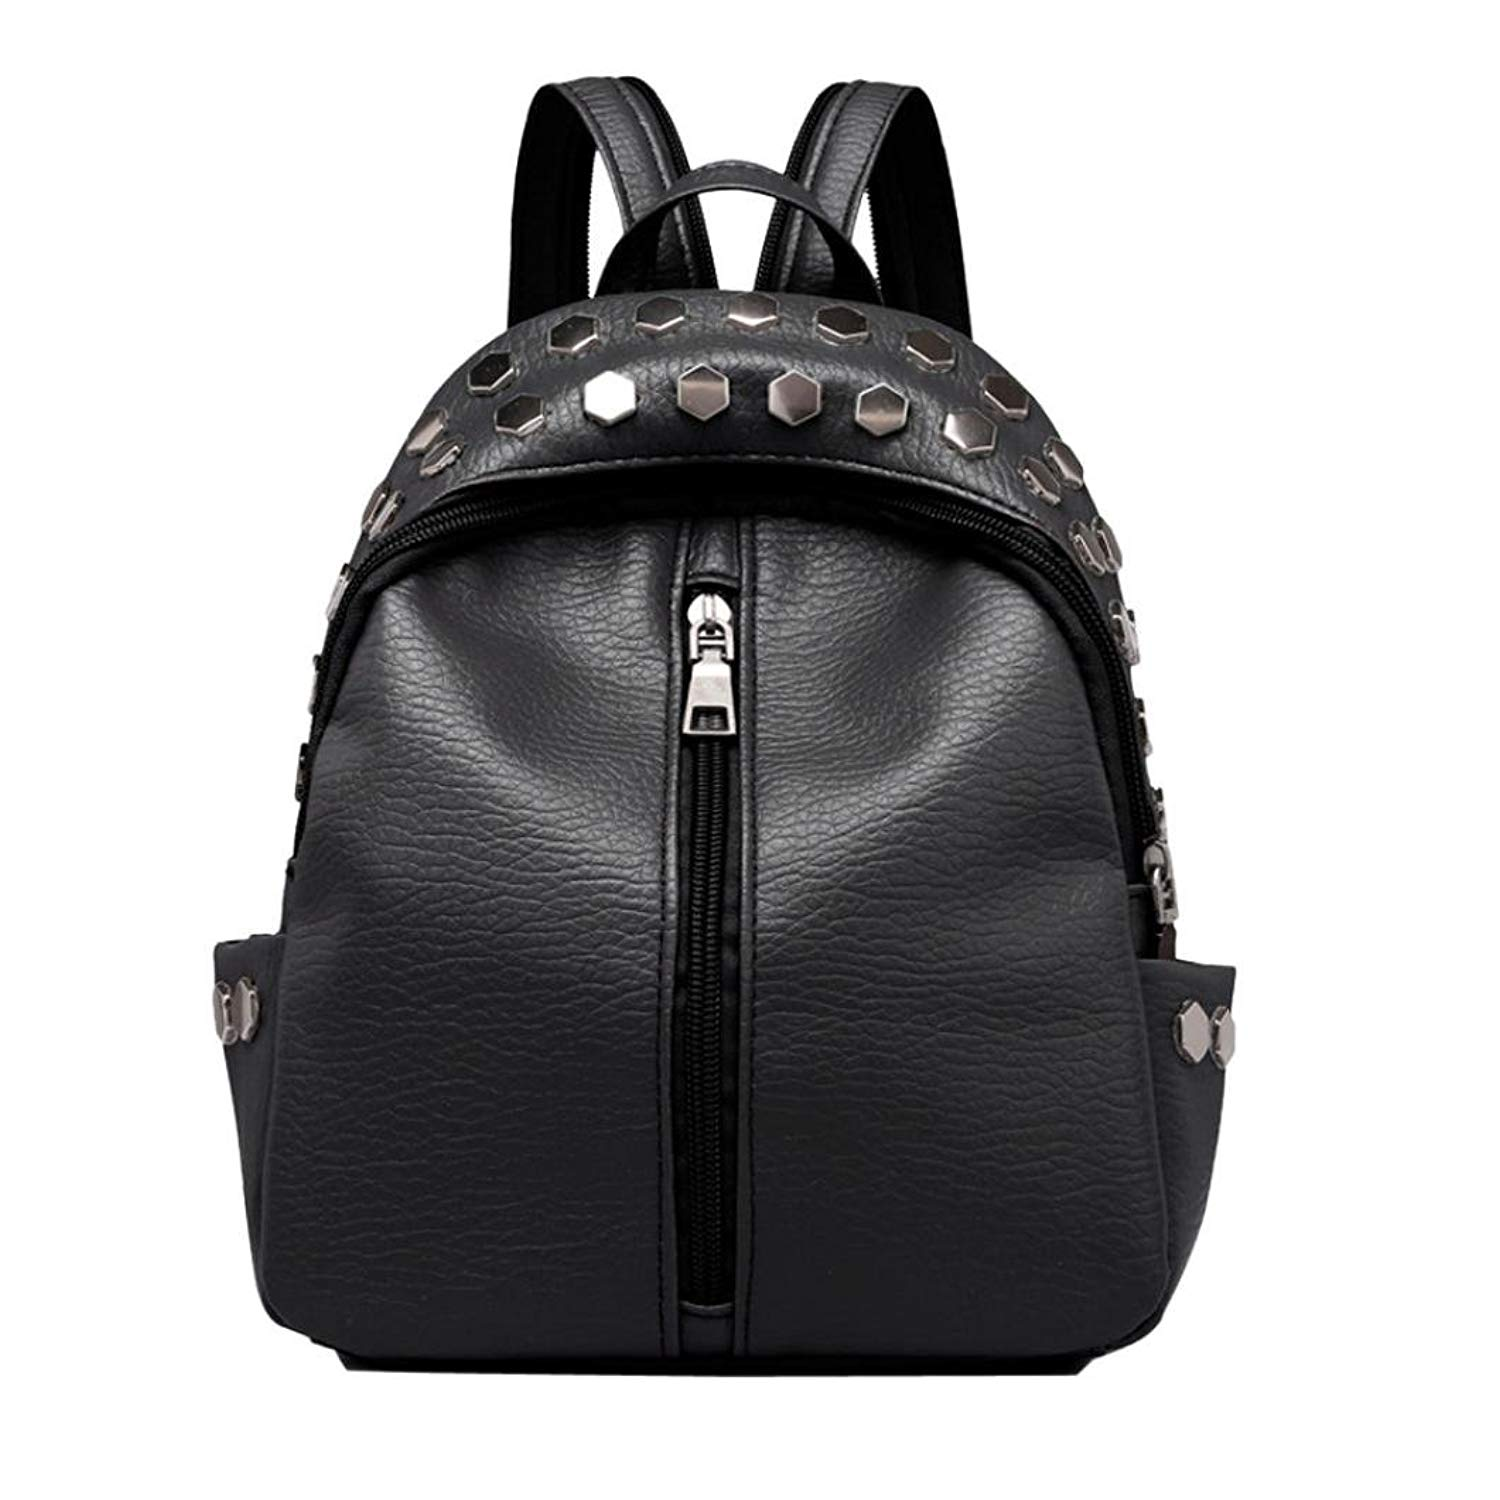 Get Quotations · Vintage PU Leather Mini Backpack Purse Fashion Travel  Rucksack for Women Girls Rivets Decoration c6957ee9da7b4